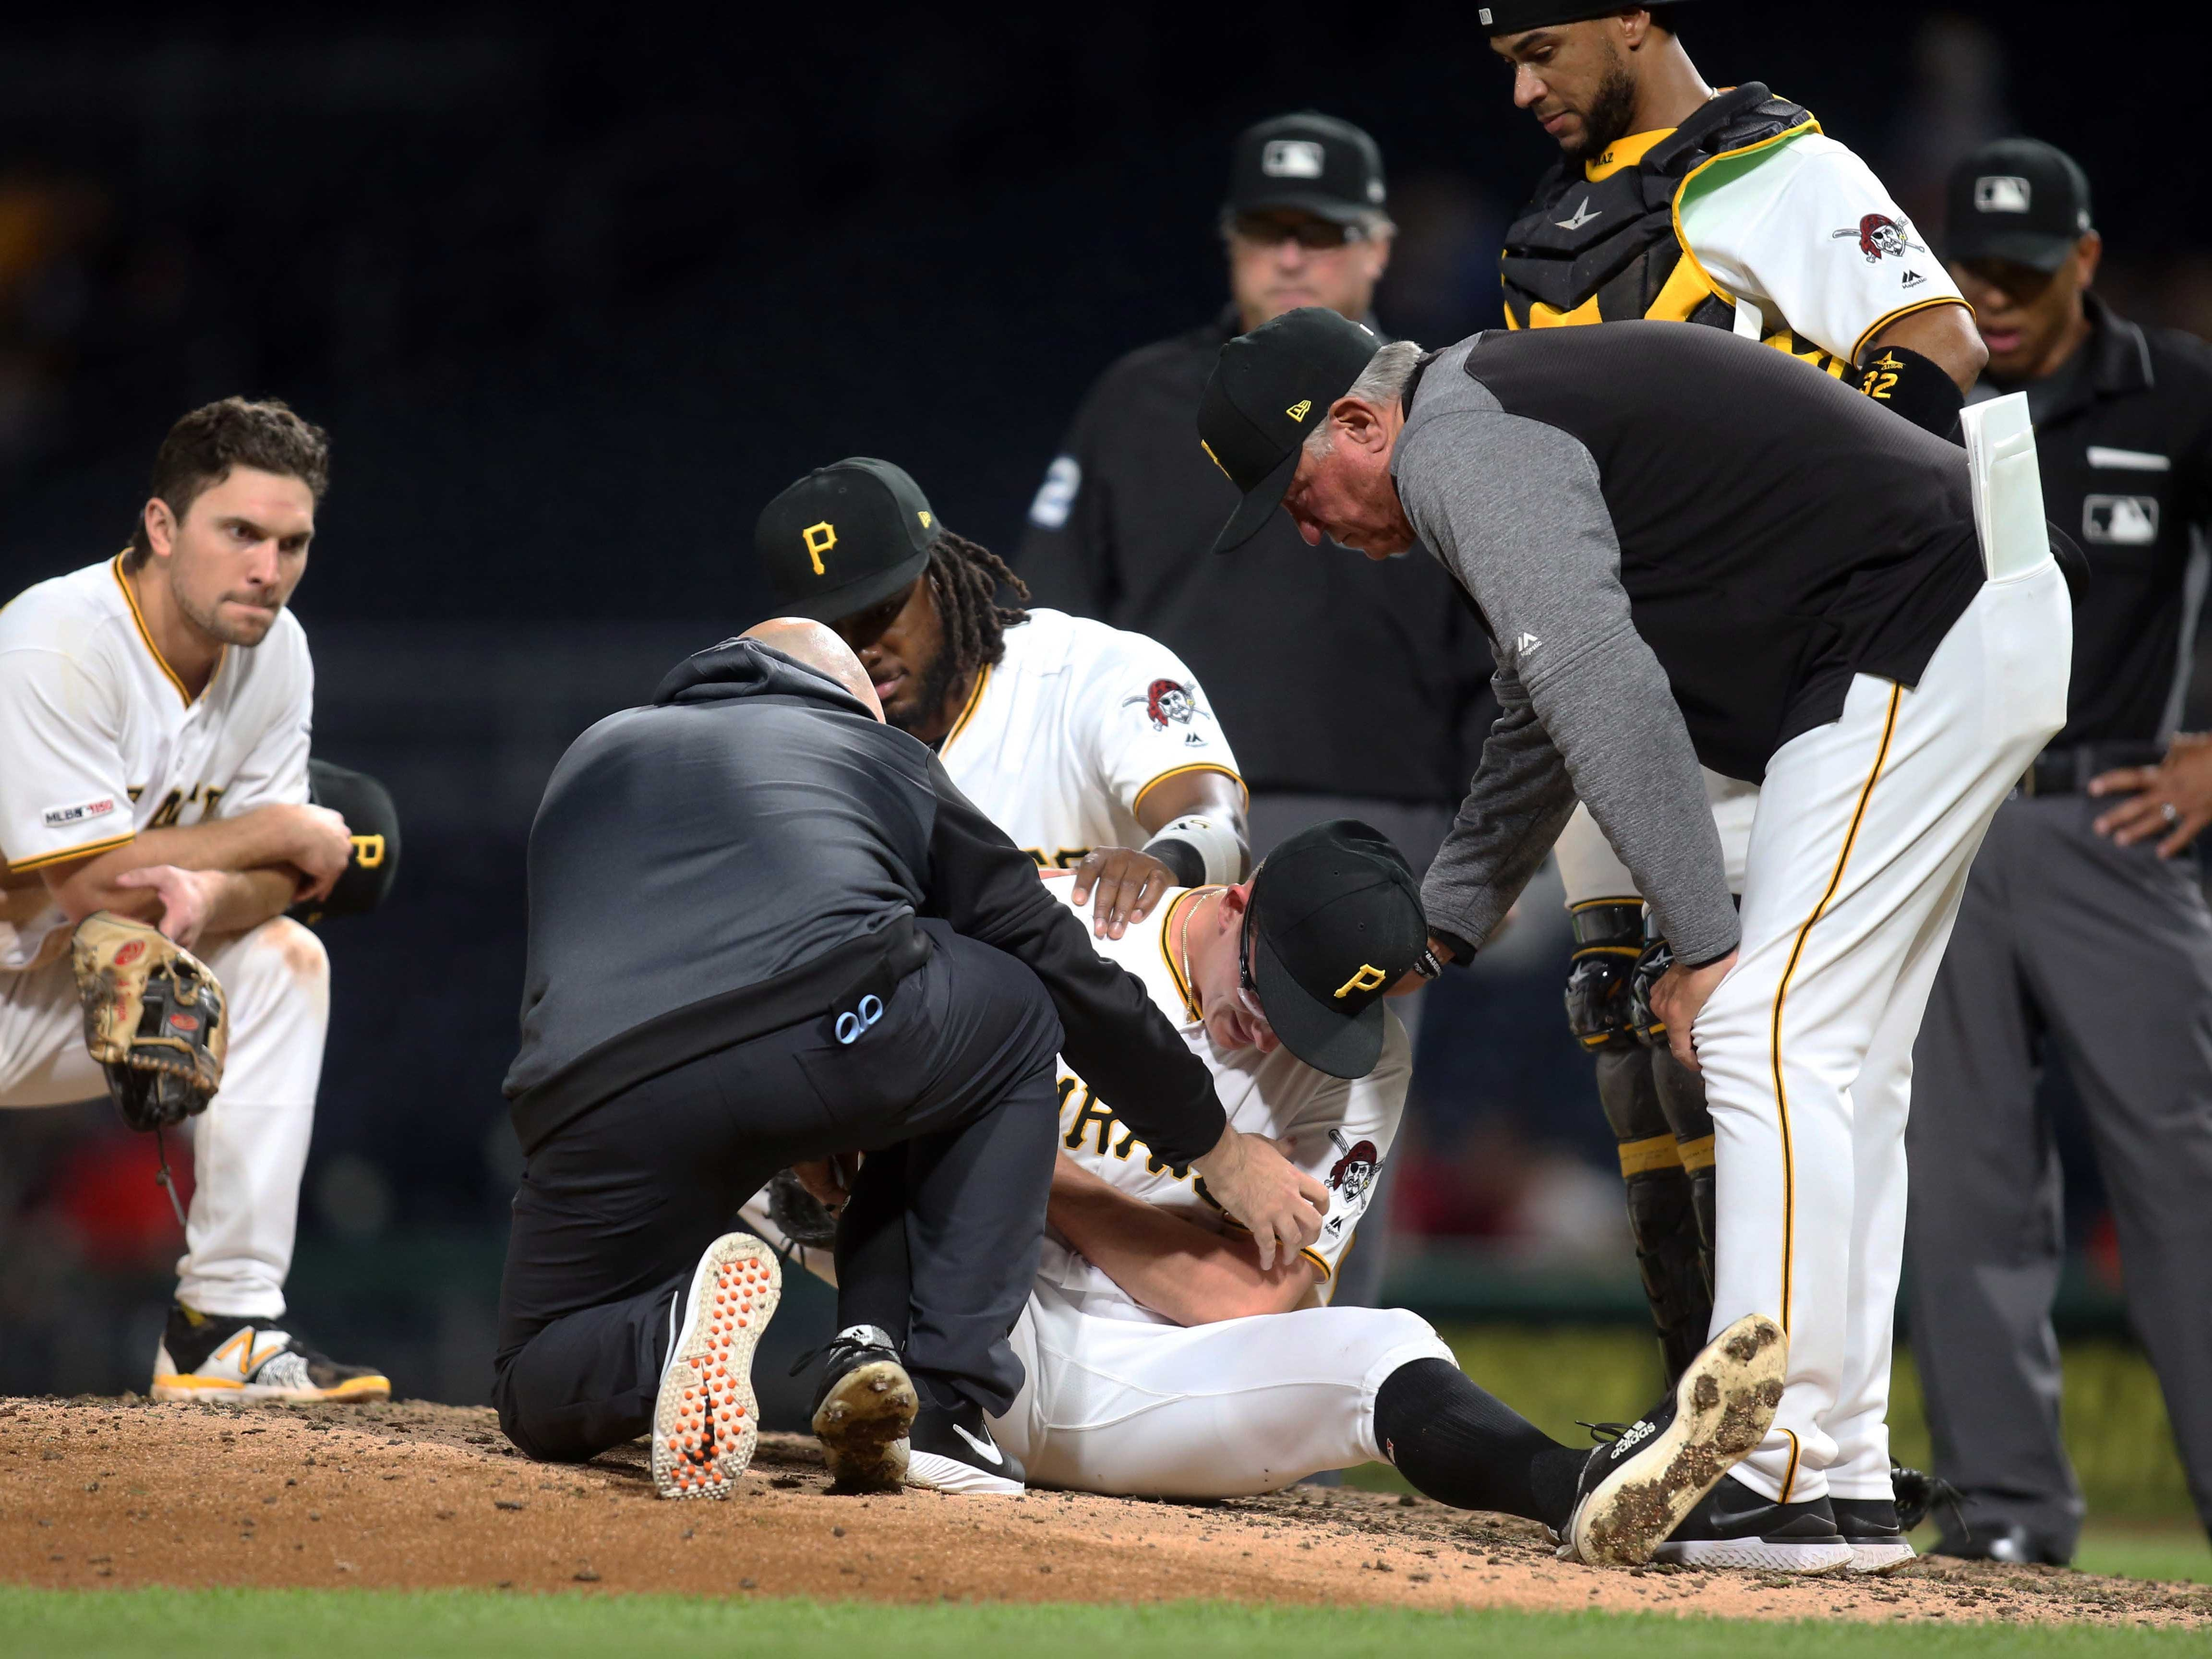 Apr 22, 2019; Pittsburgh, PA, USA;  Pittsburgh Pirates relief pitcher Nick Burdi (center) is attended to by team trainers as teammates and manager Clint Hurdle (13) look on after Burdi suffered an injury while pitching against the Arizona Diamondbacks during the eighth inning at PNC Park.